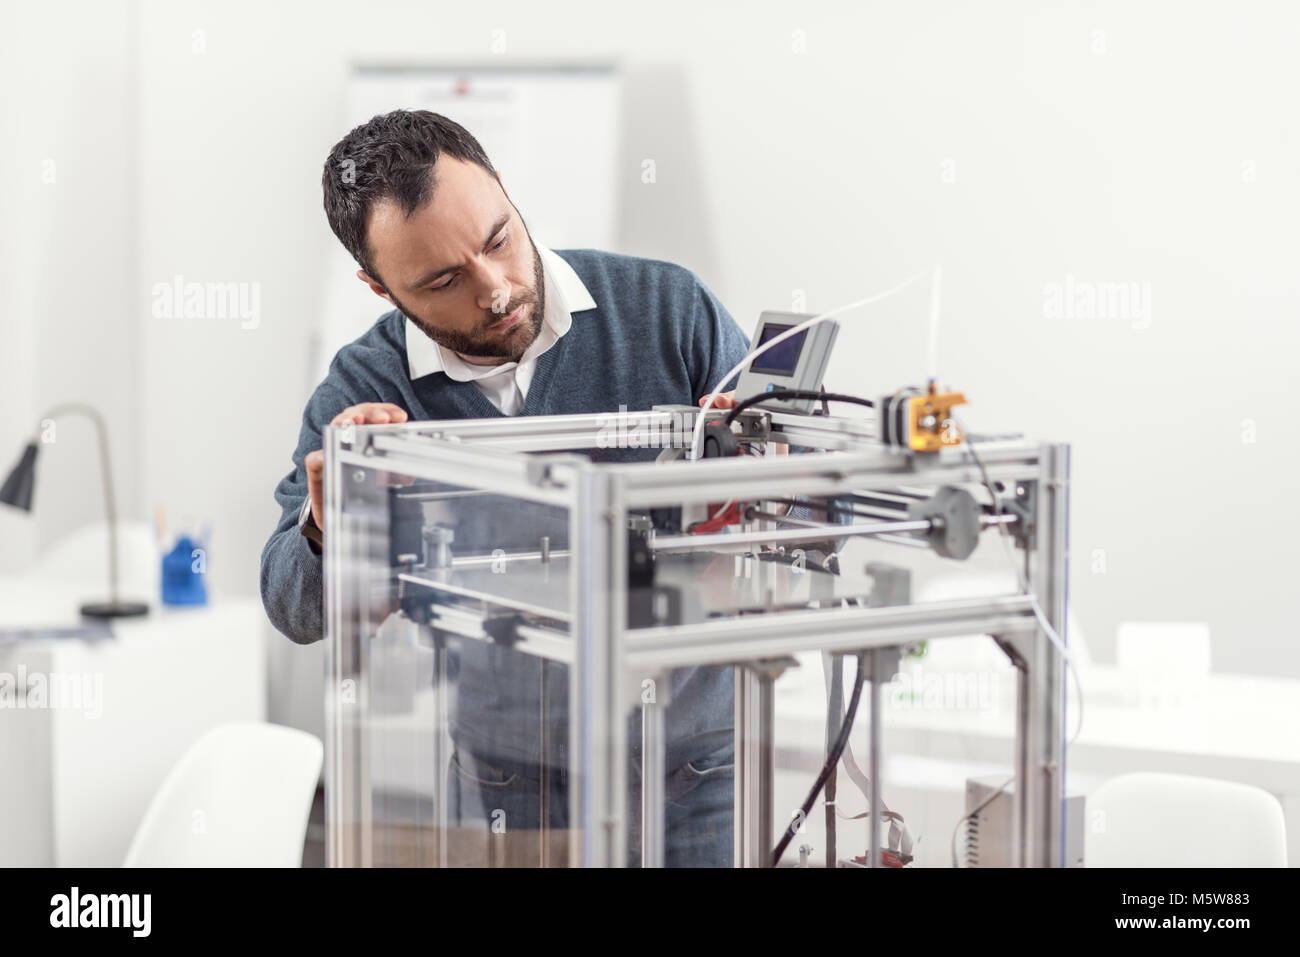 Pleasant young man checking the work of 3D printer - Stock Image